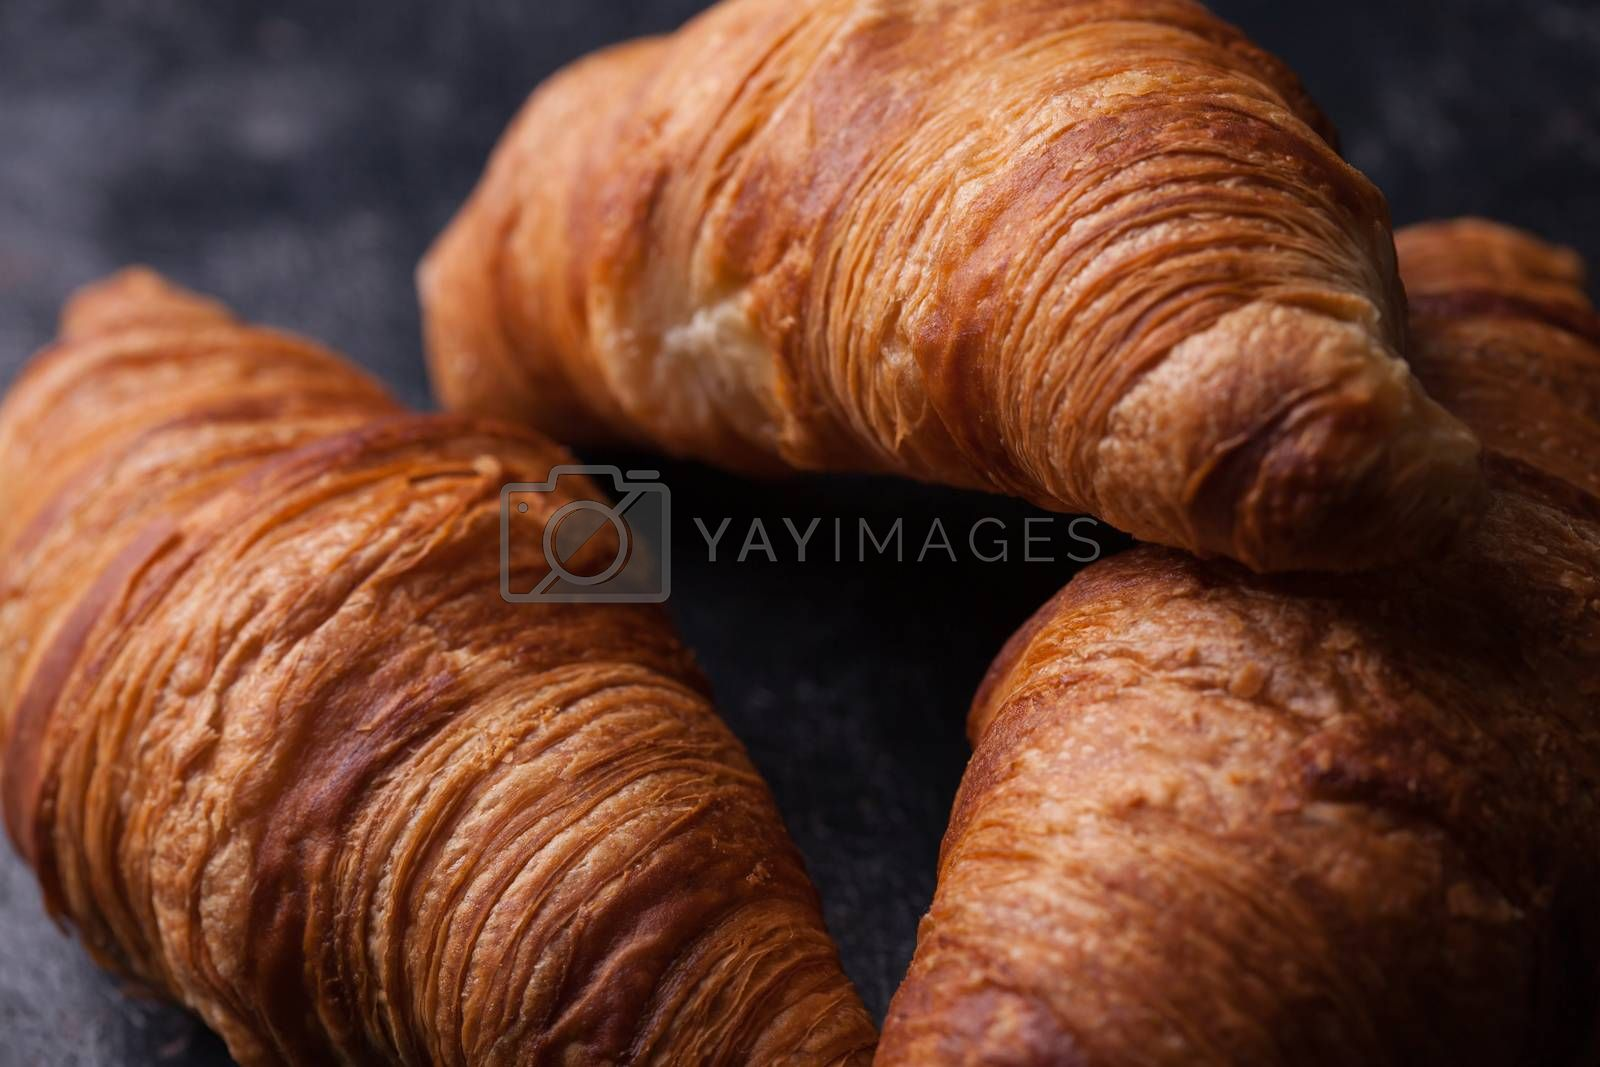 Tasty french croissants on a black wooden table. Great dessert.